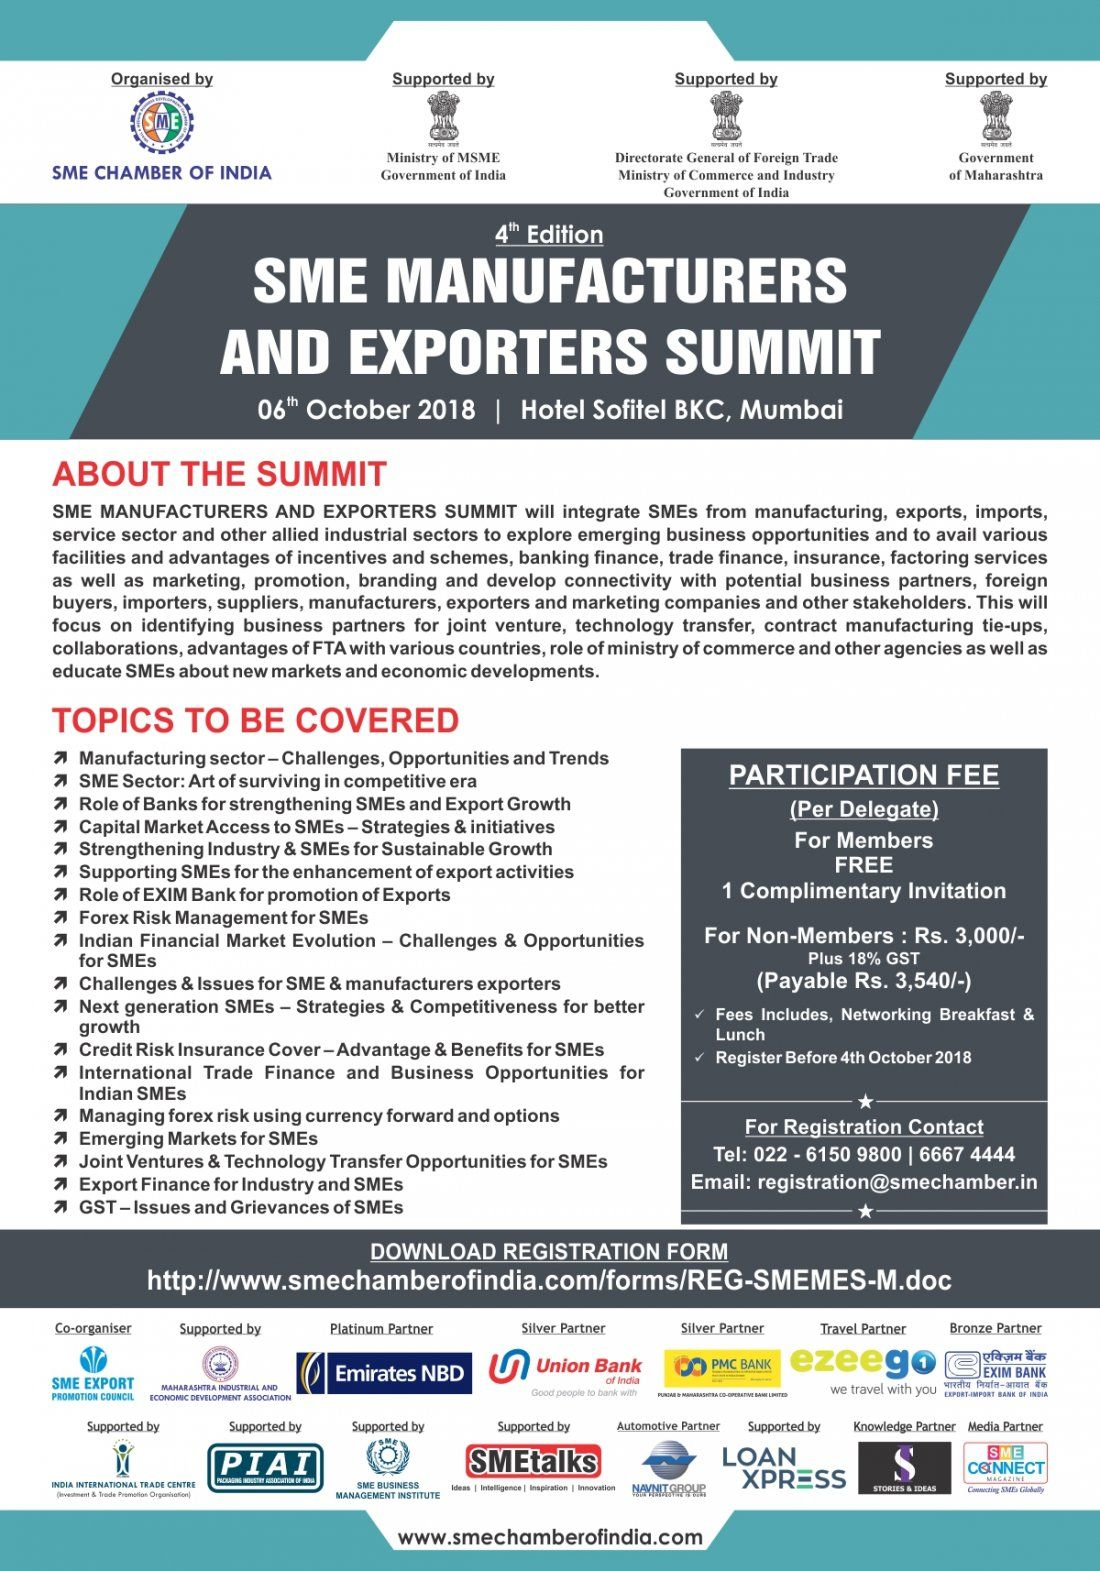 4th Edition SME MANUFACTURERS AND EXPORTERS SUMMIT